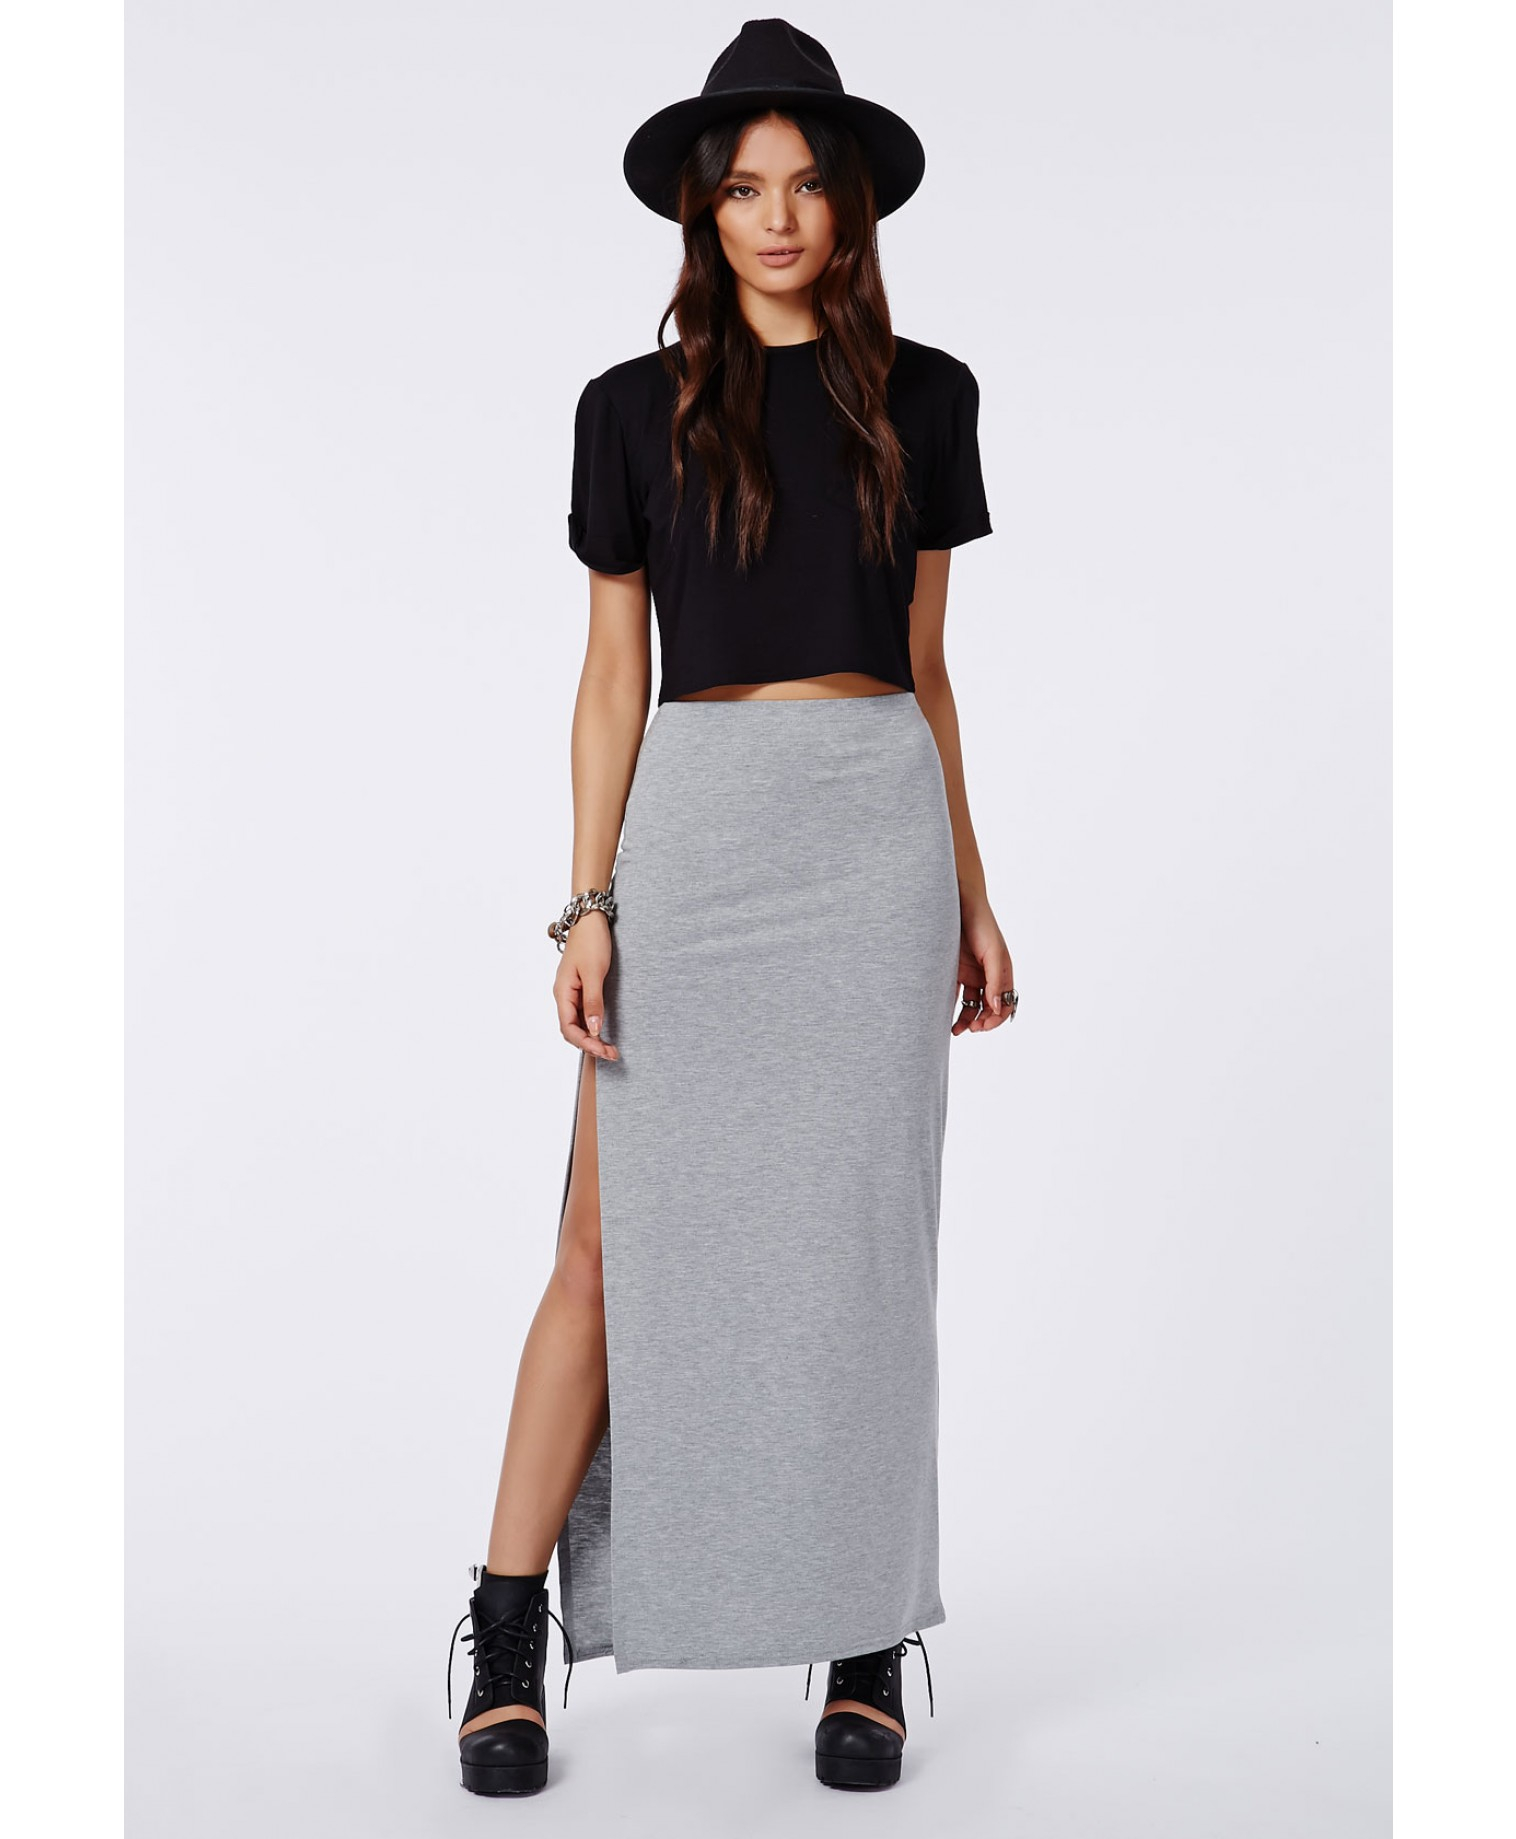 Missguided Jenna Split Maxi Skirt In Grey in Gray | Lyst